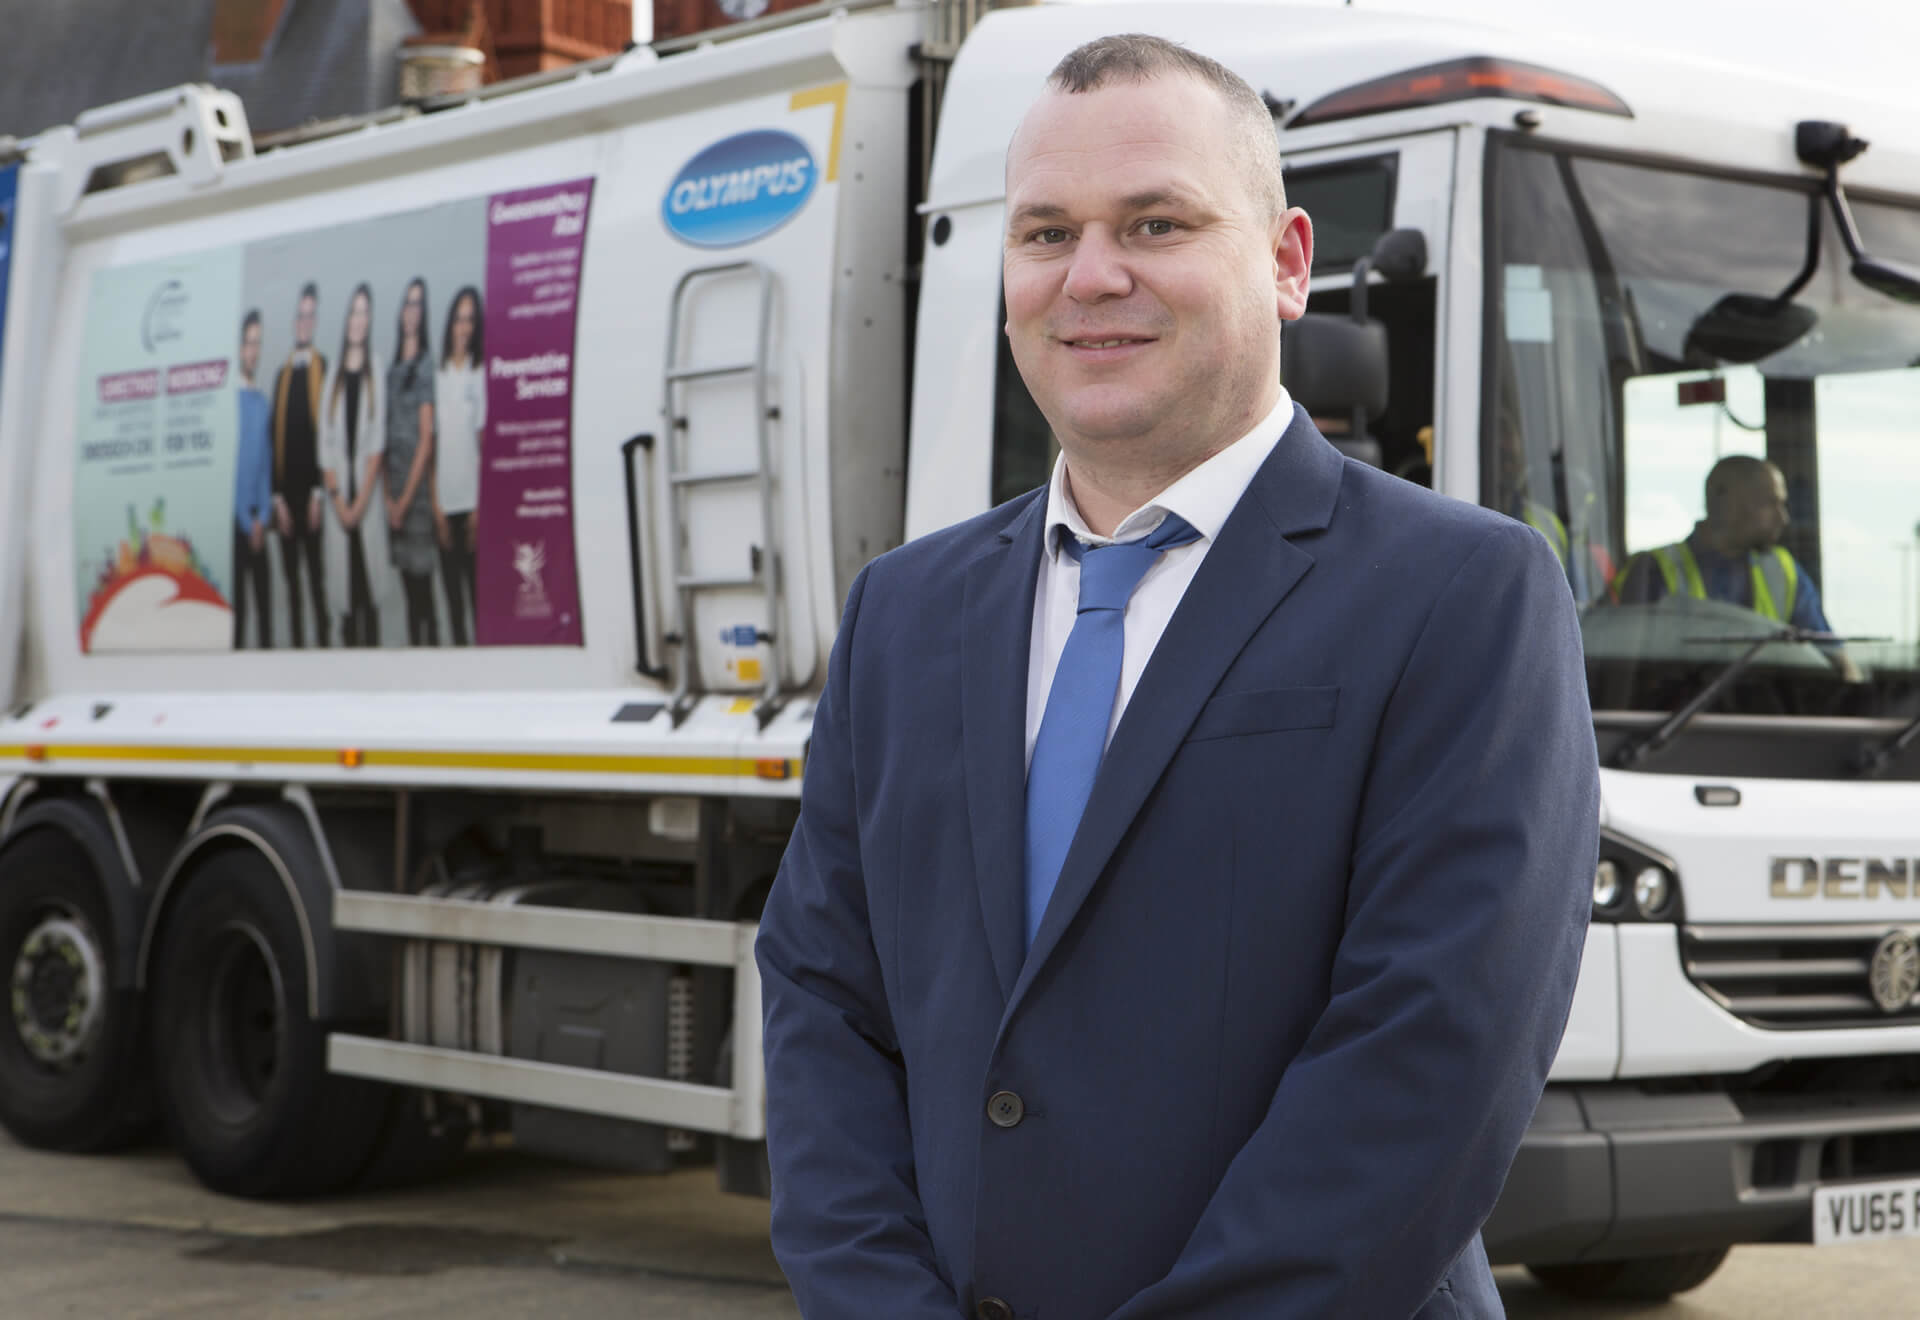 Cardiff Council Commercial Waste